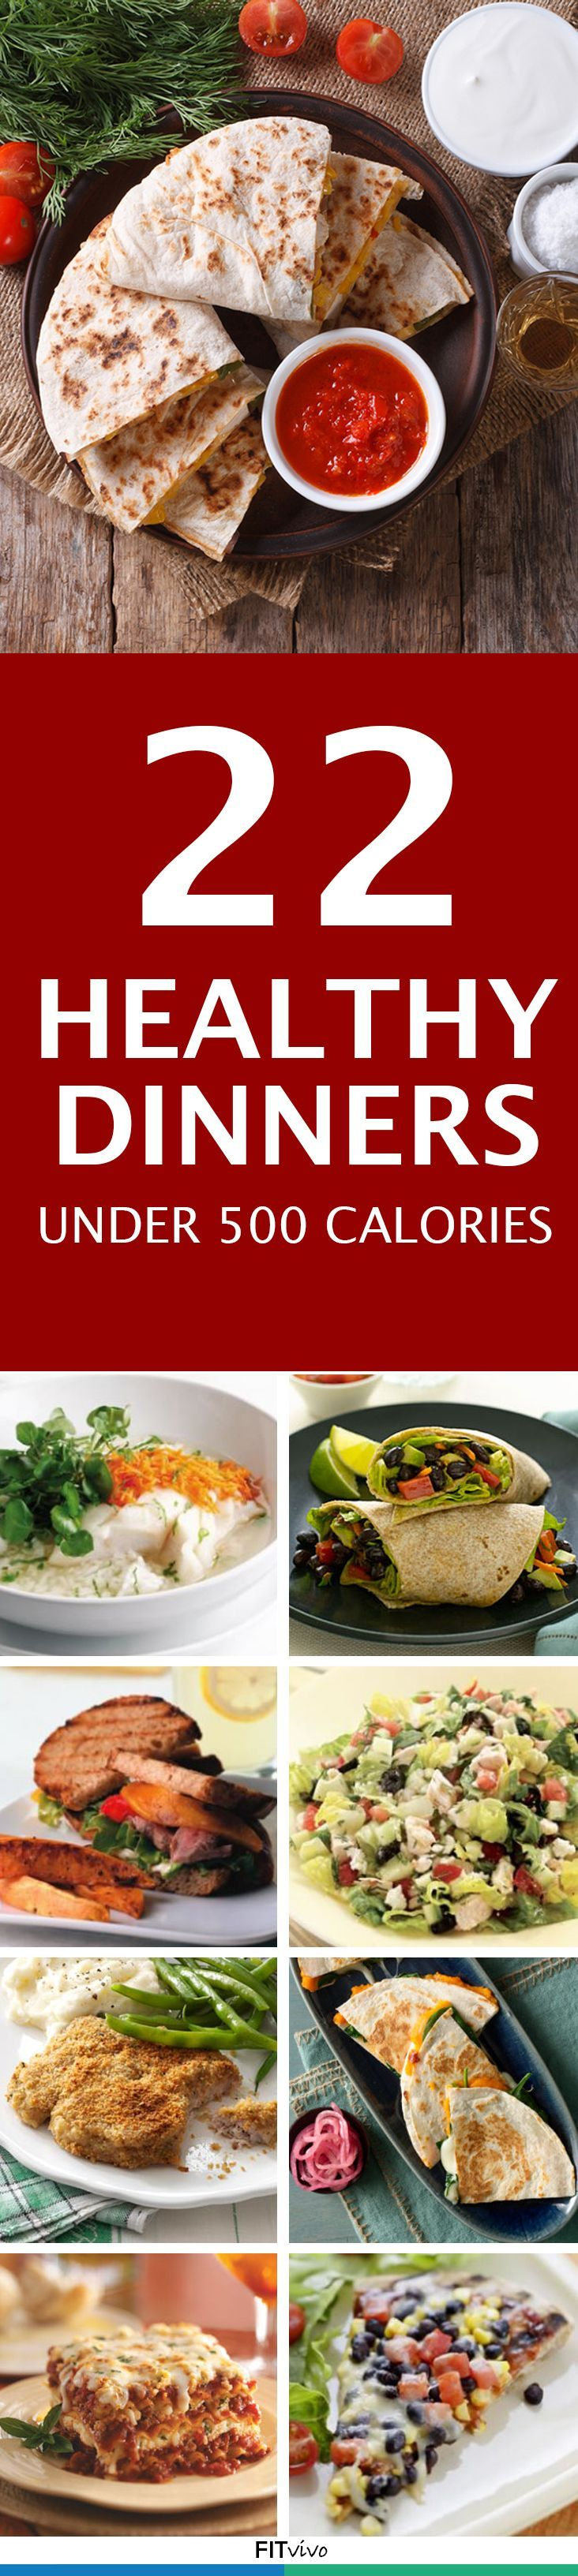 Here are 22 healthy dinners that are under 500 calories. These meals help keep your weight loss regime in check #coupon code nicesup123 gets 25% off at  Provestra.com Skinception.com